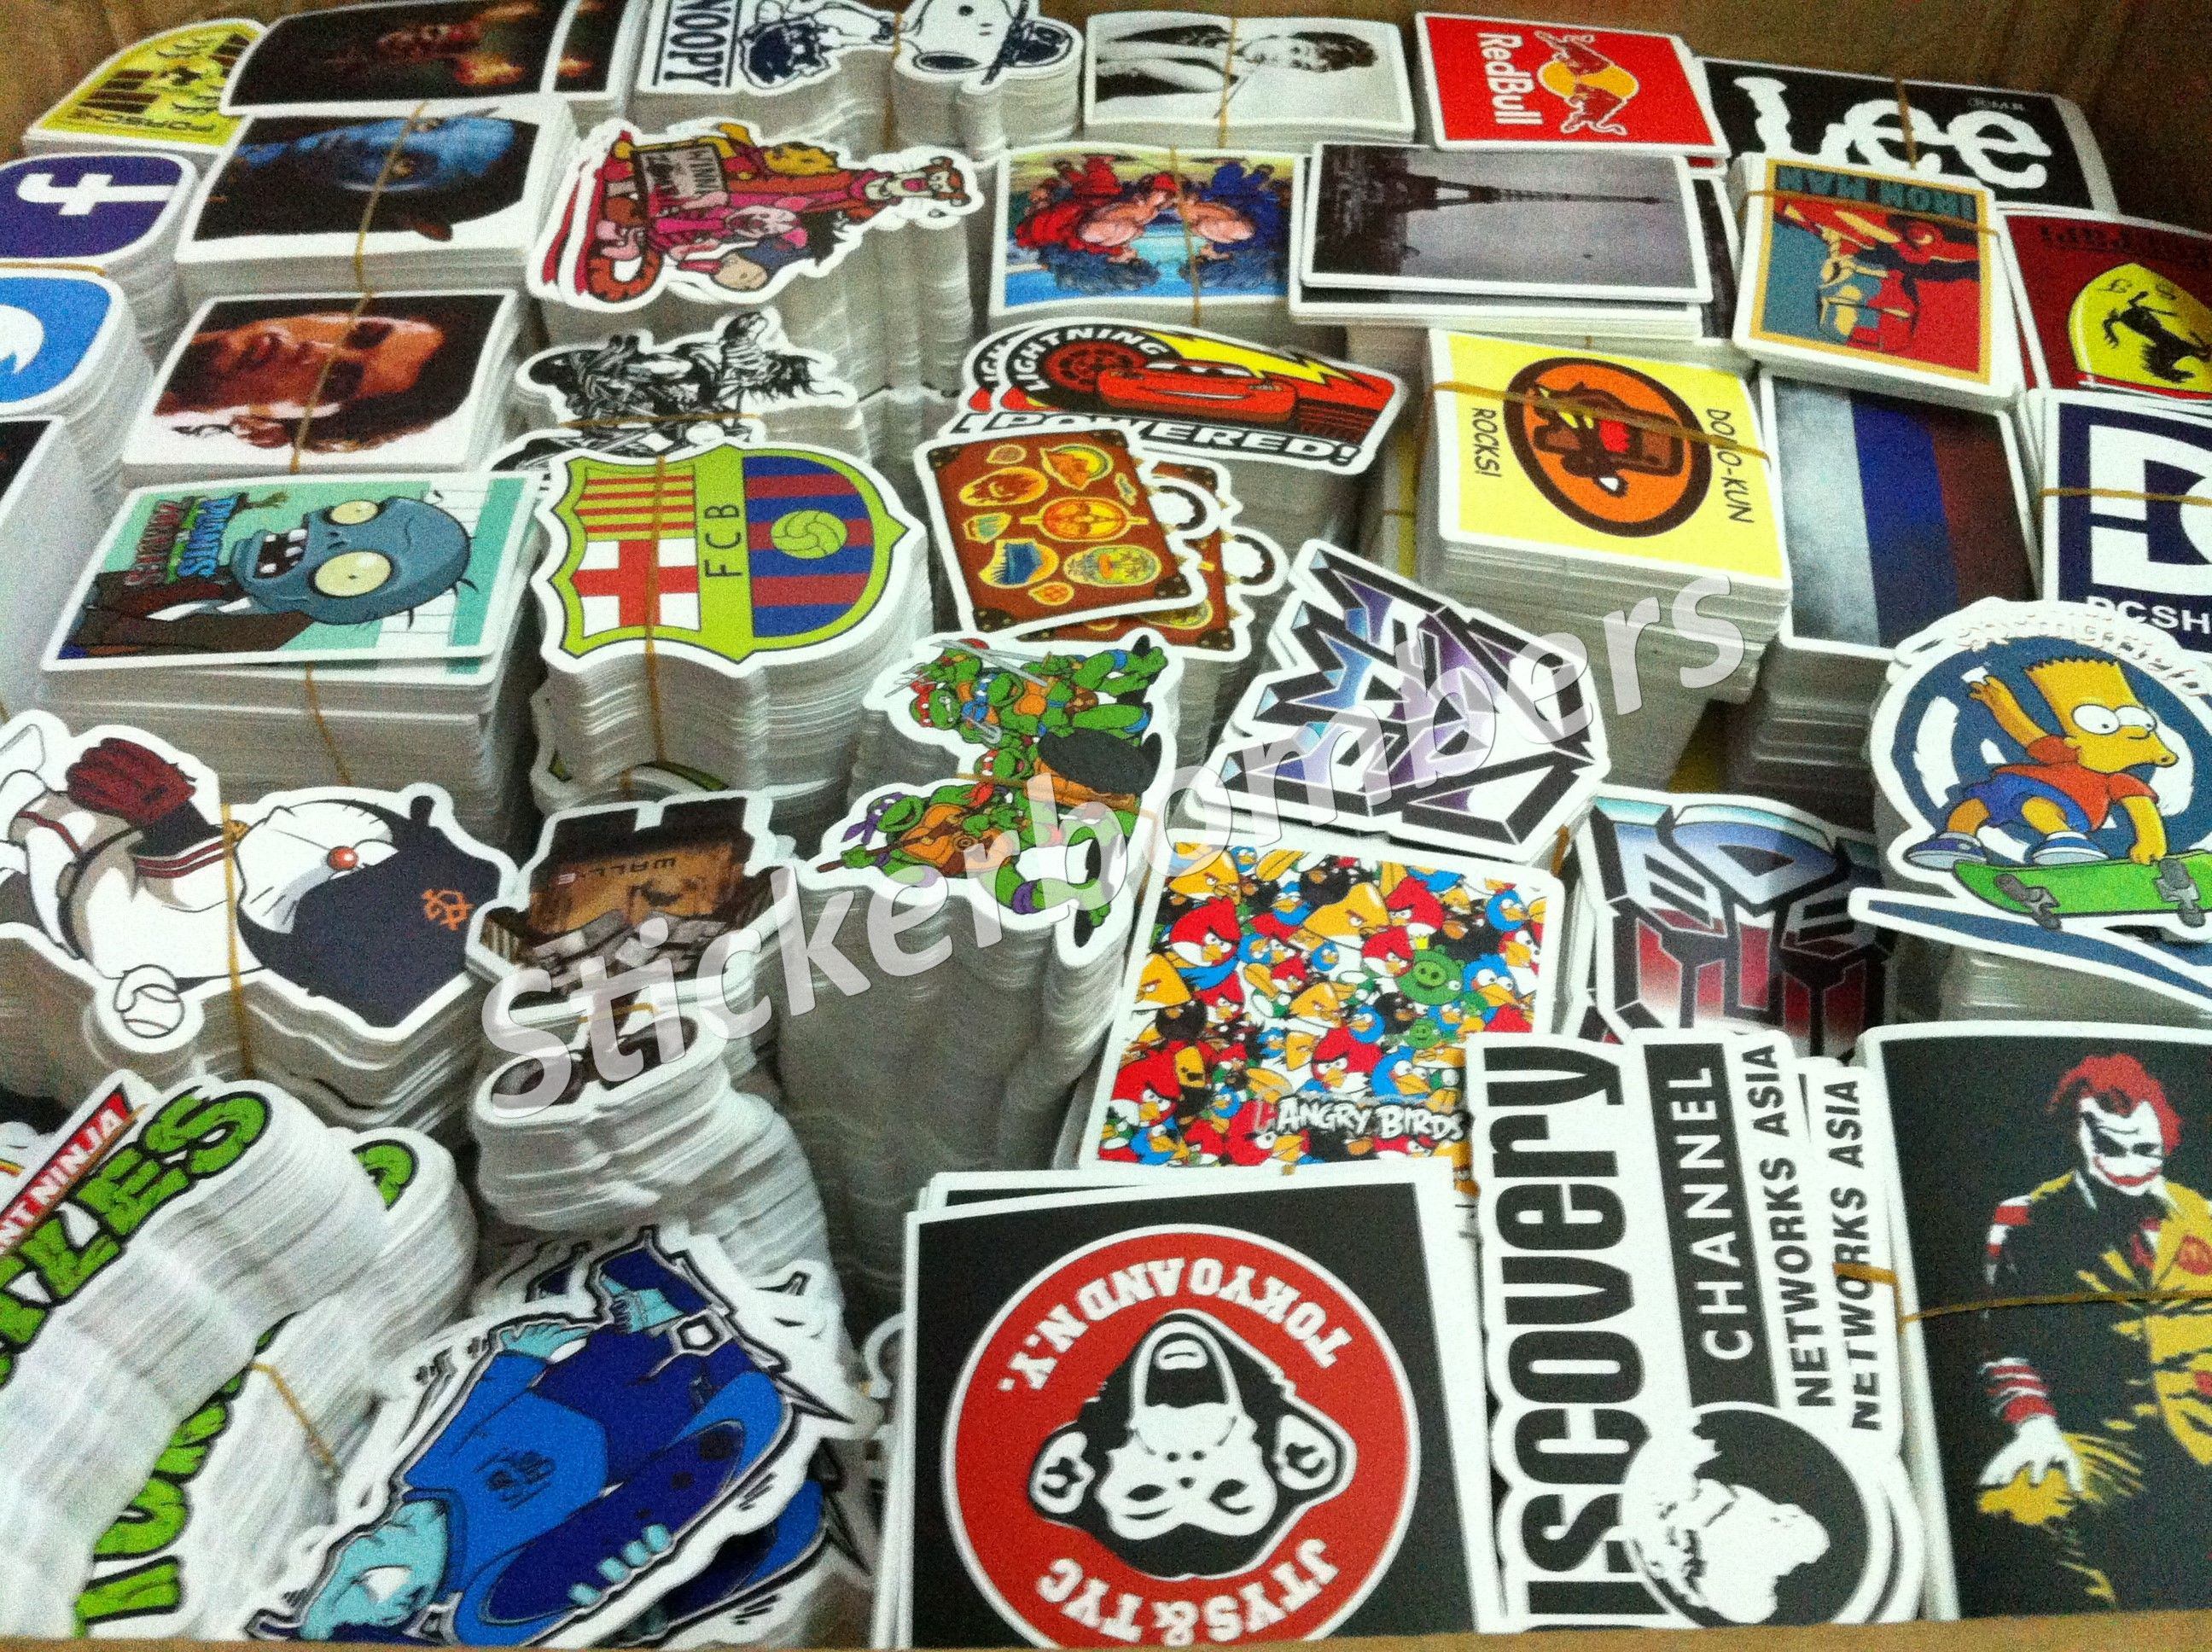 500 #StickerBomb #Stickers for £45 + Free Express P&P to #UK #Europe ...